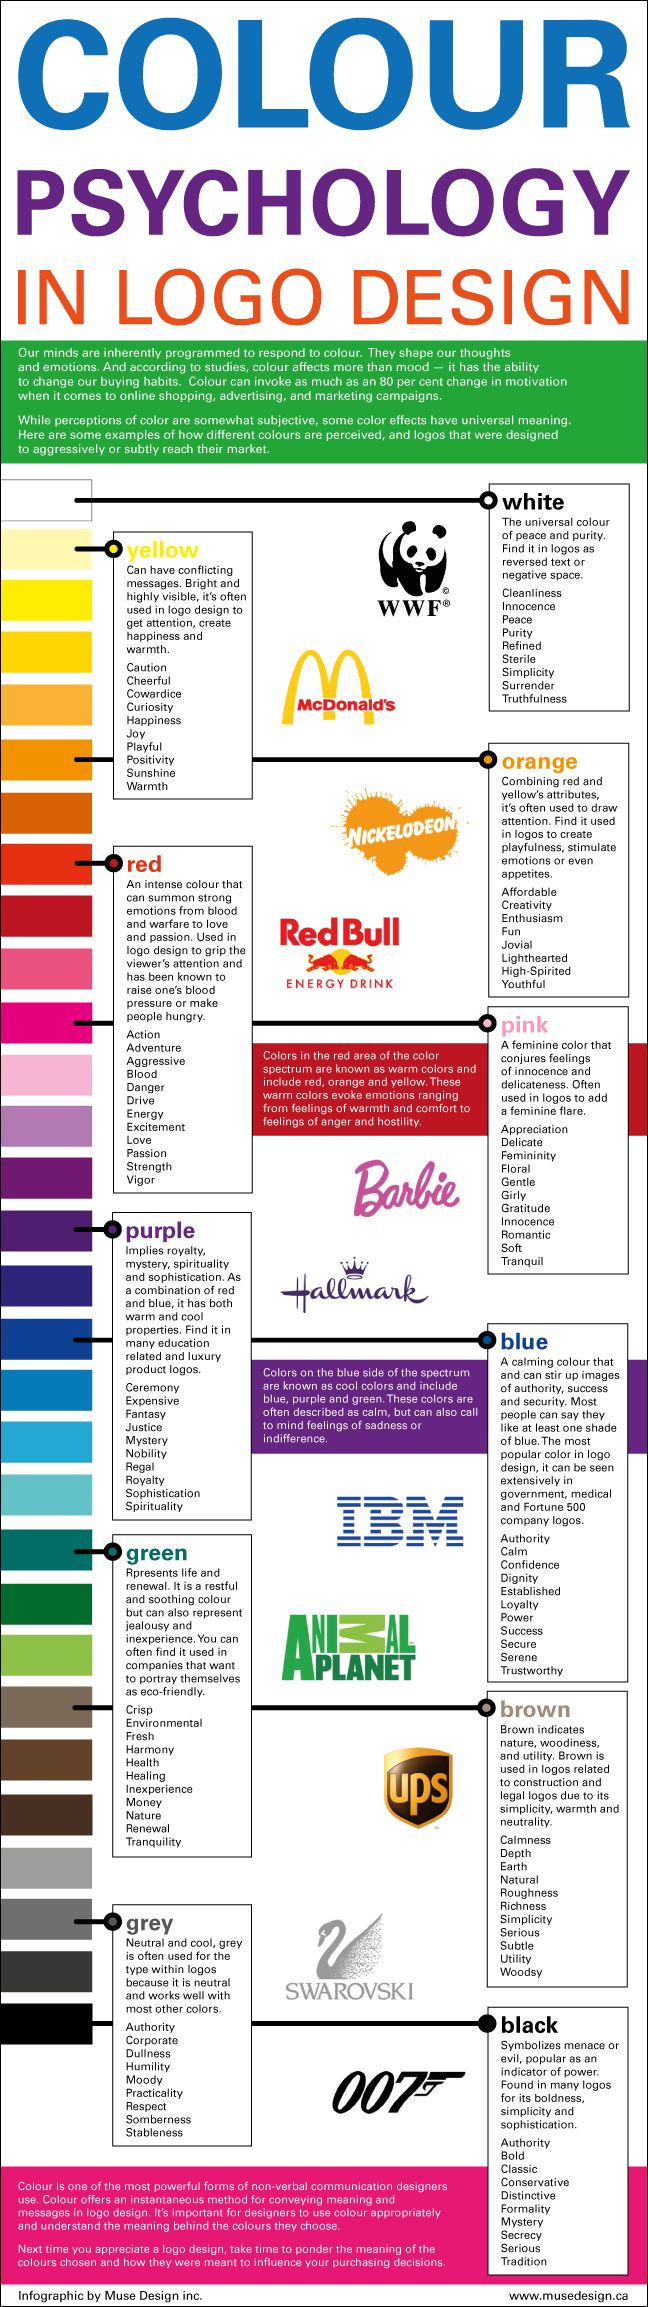 Psicología del color en el diseño de logos #infografia #infographic #design  Great for teaching visual literacy!